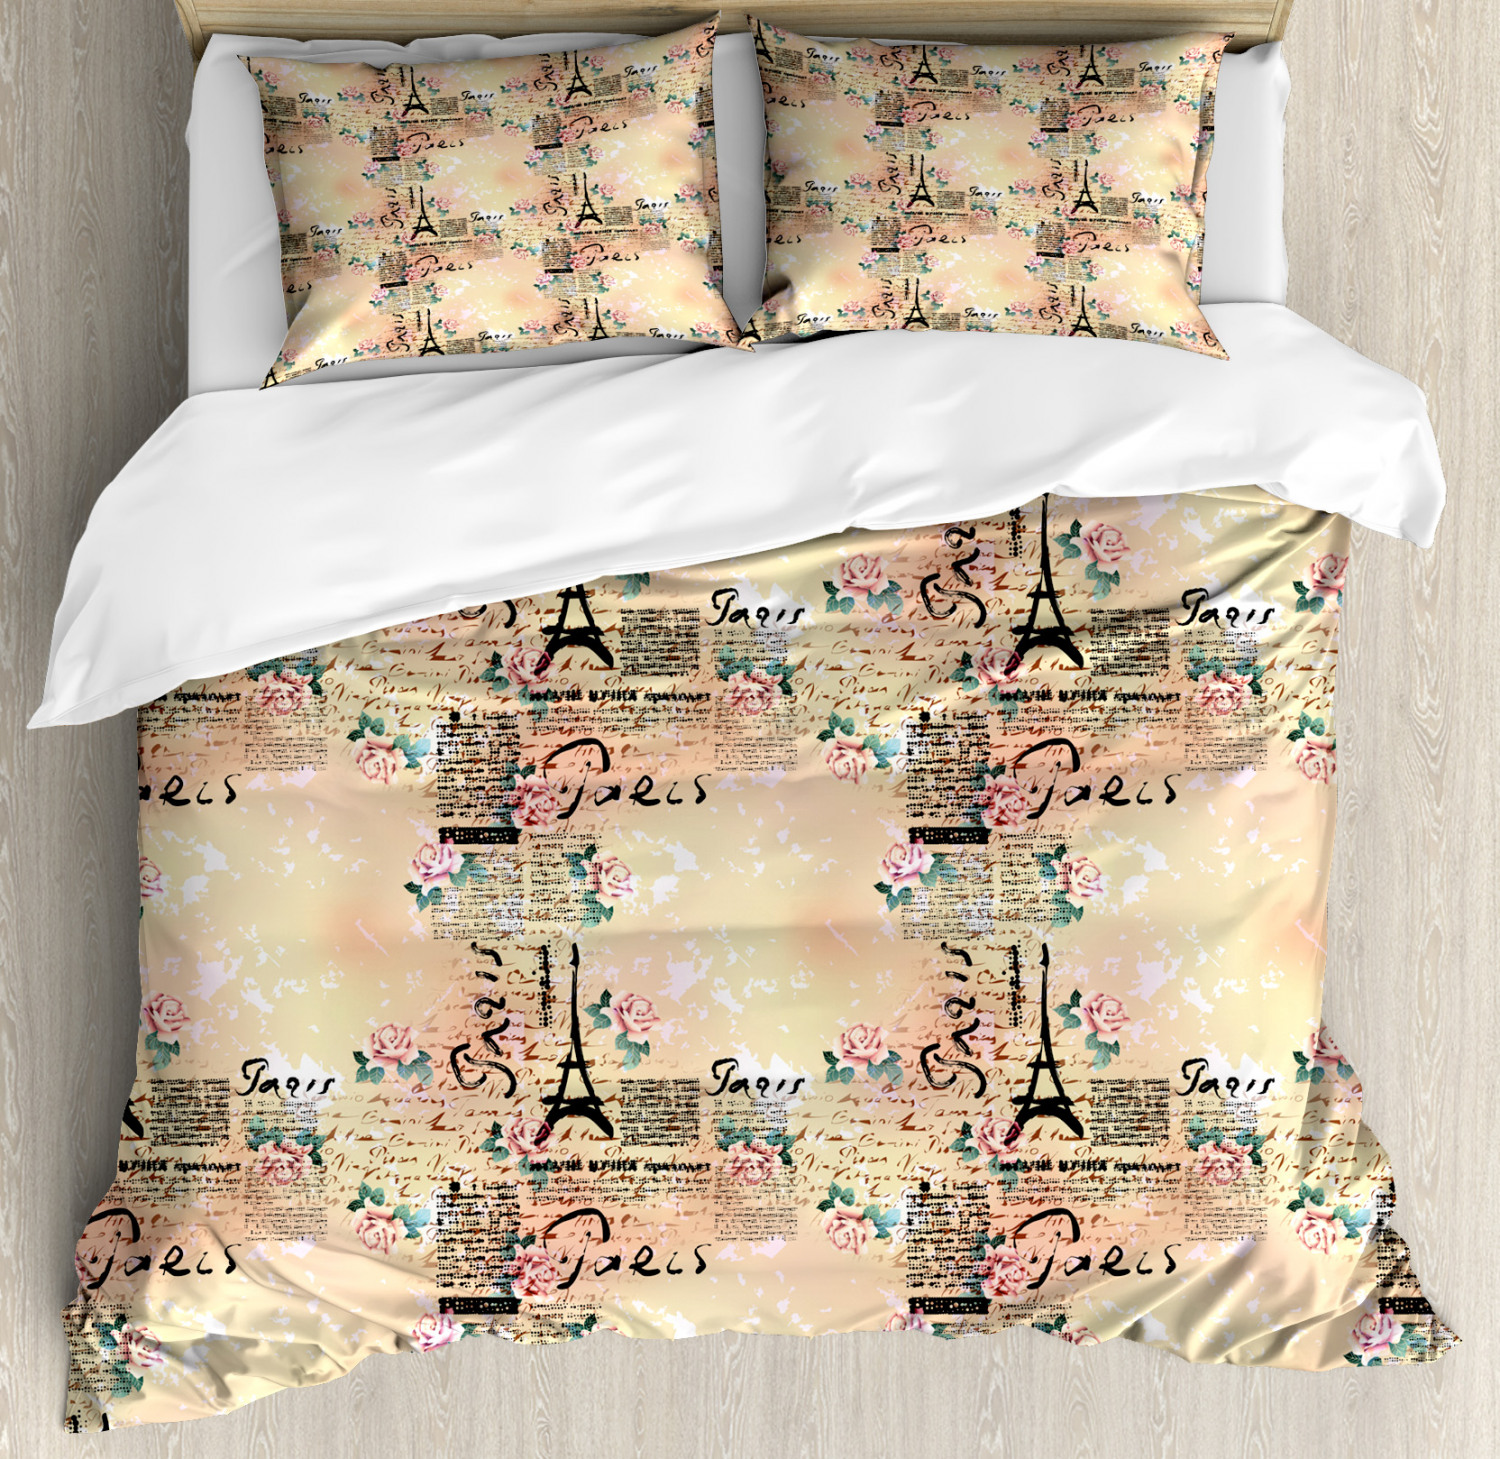 Modern Duvet Cover Set Queen Size French Paris Themed Lettering With Floral Leaves Details Artwork Decorative 3 Piece Bedding Set With 2 Pillow Shams Blue Black And Pale Pink By Ambesonne